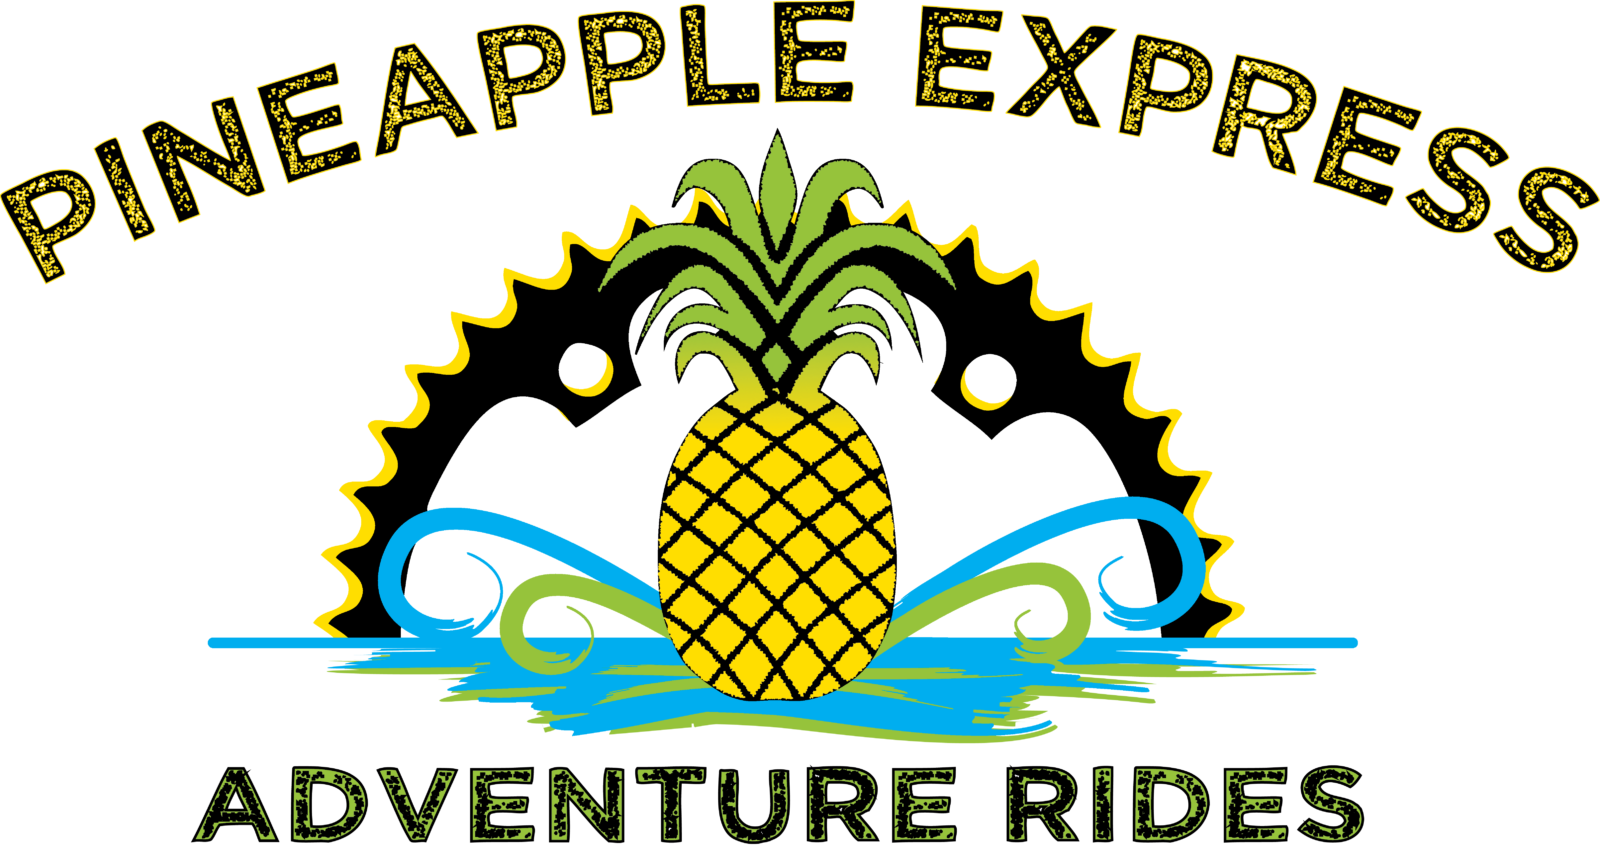 Pineapple Express- logo-outlined